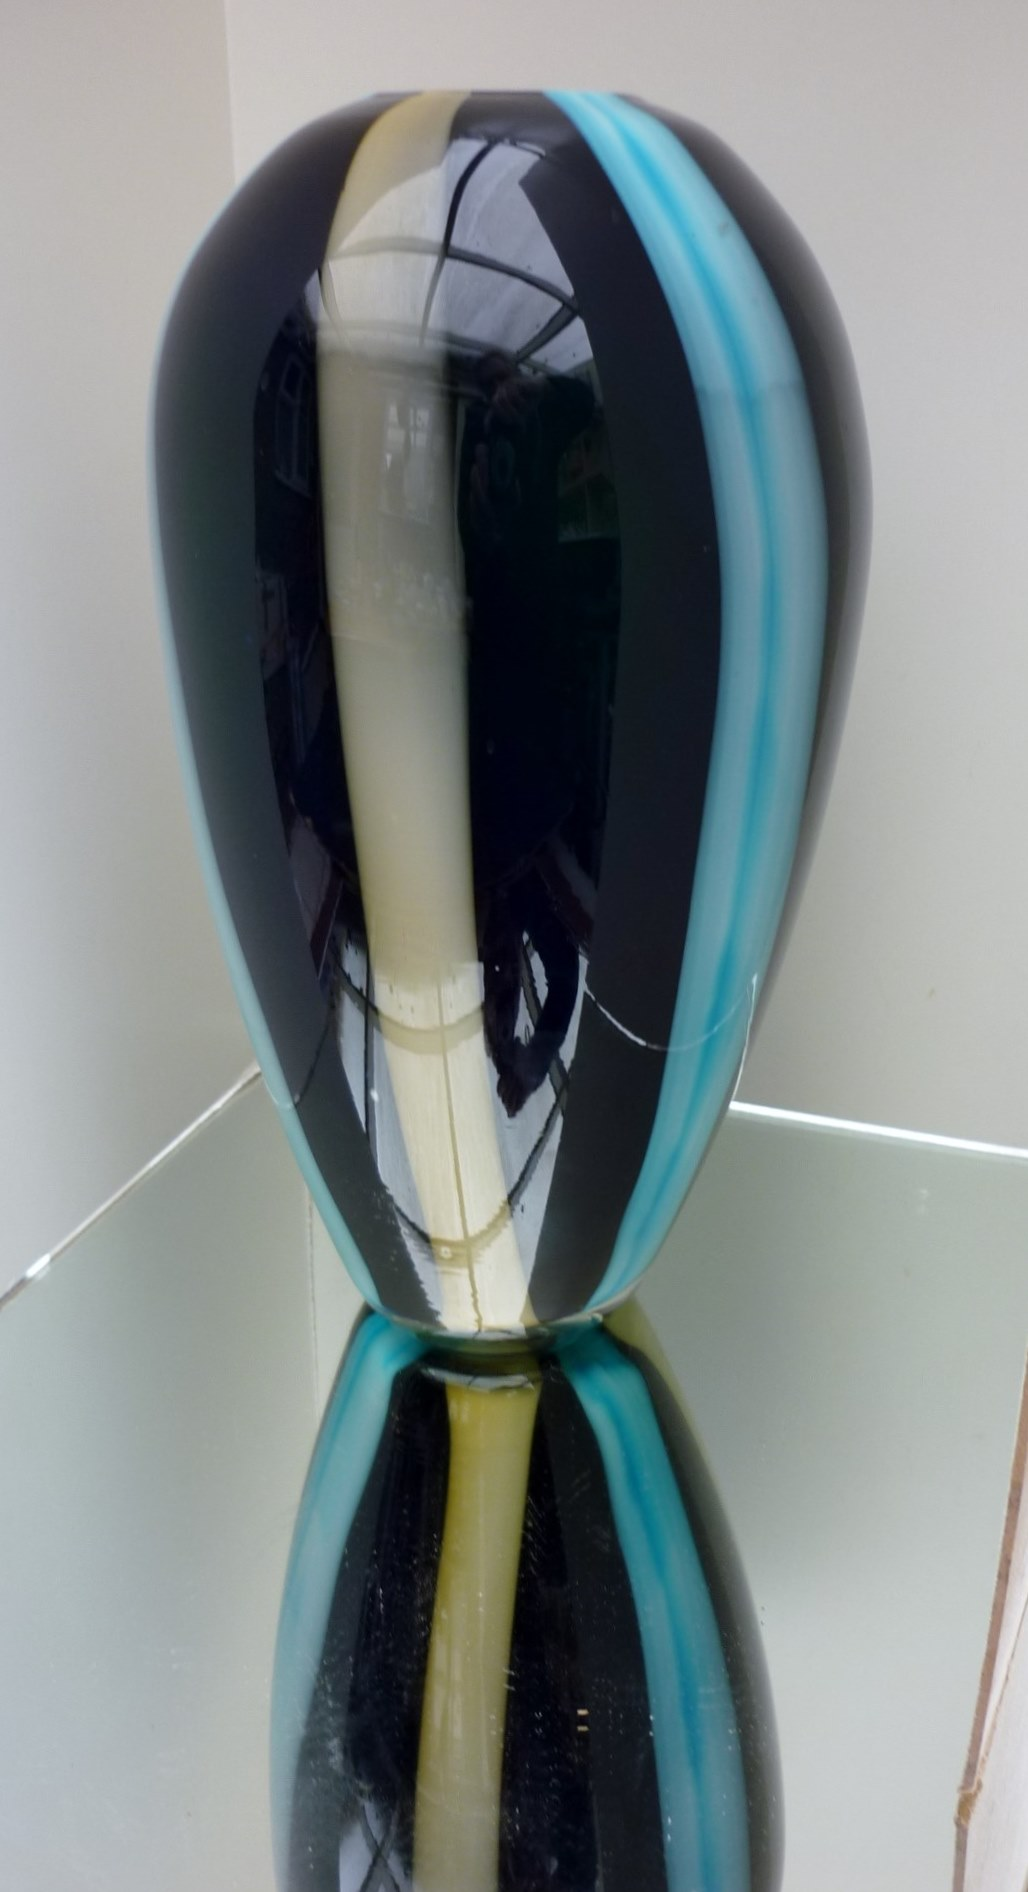 An impressive Studio Glass Baluster Vase.